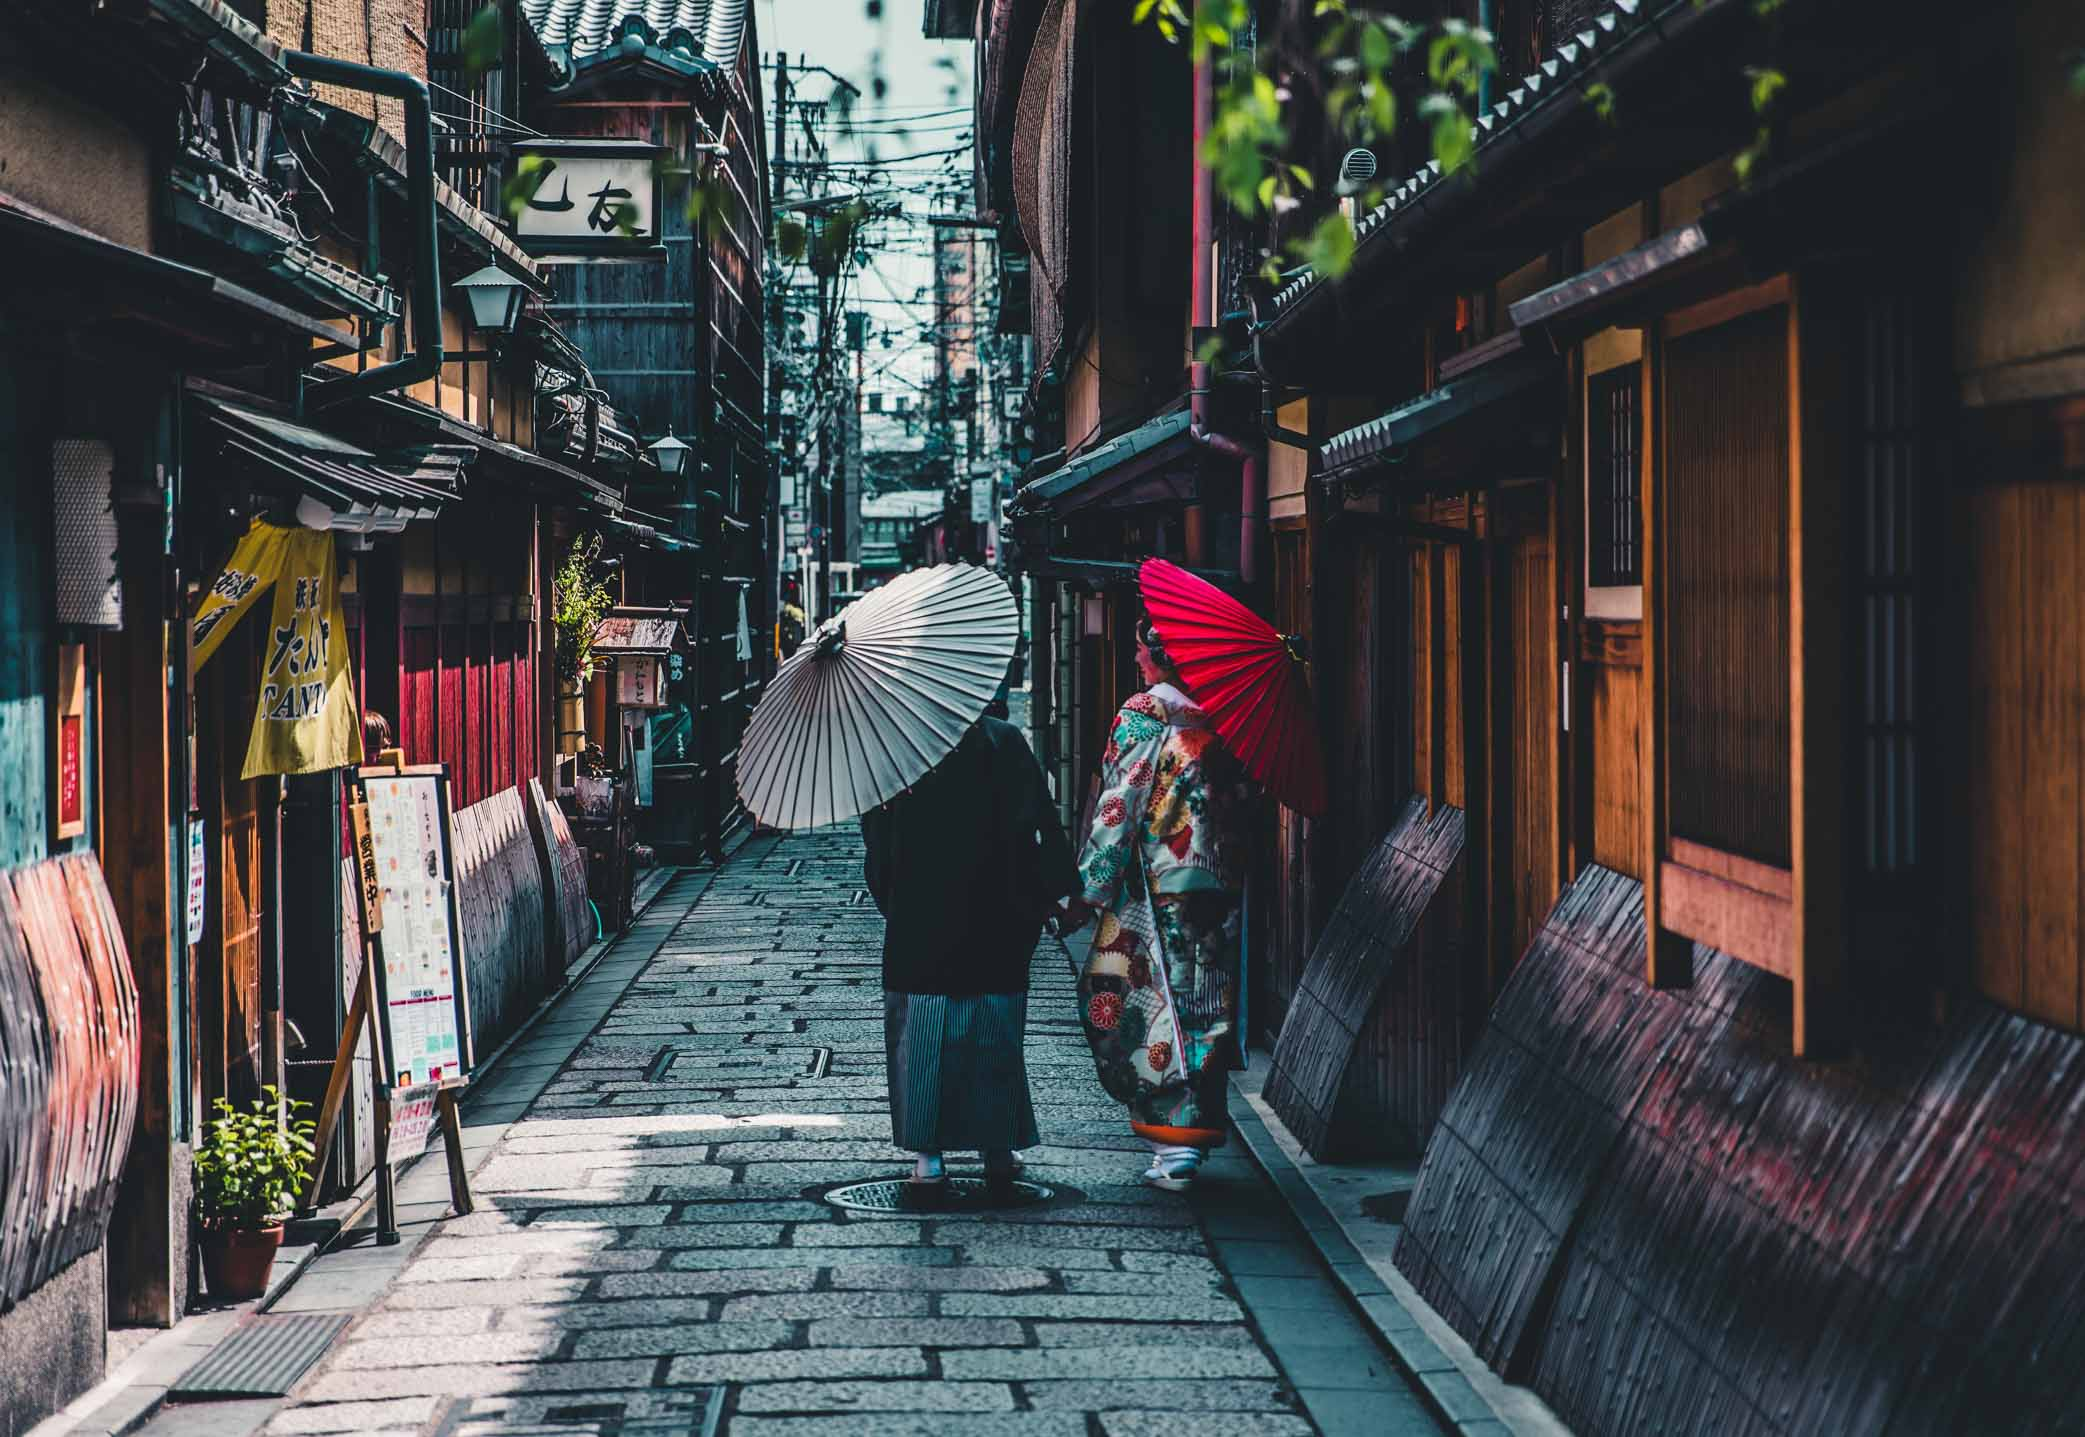 Where to stay in Kyoto Japan - Hotels Hostels Ryokan